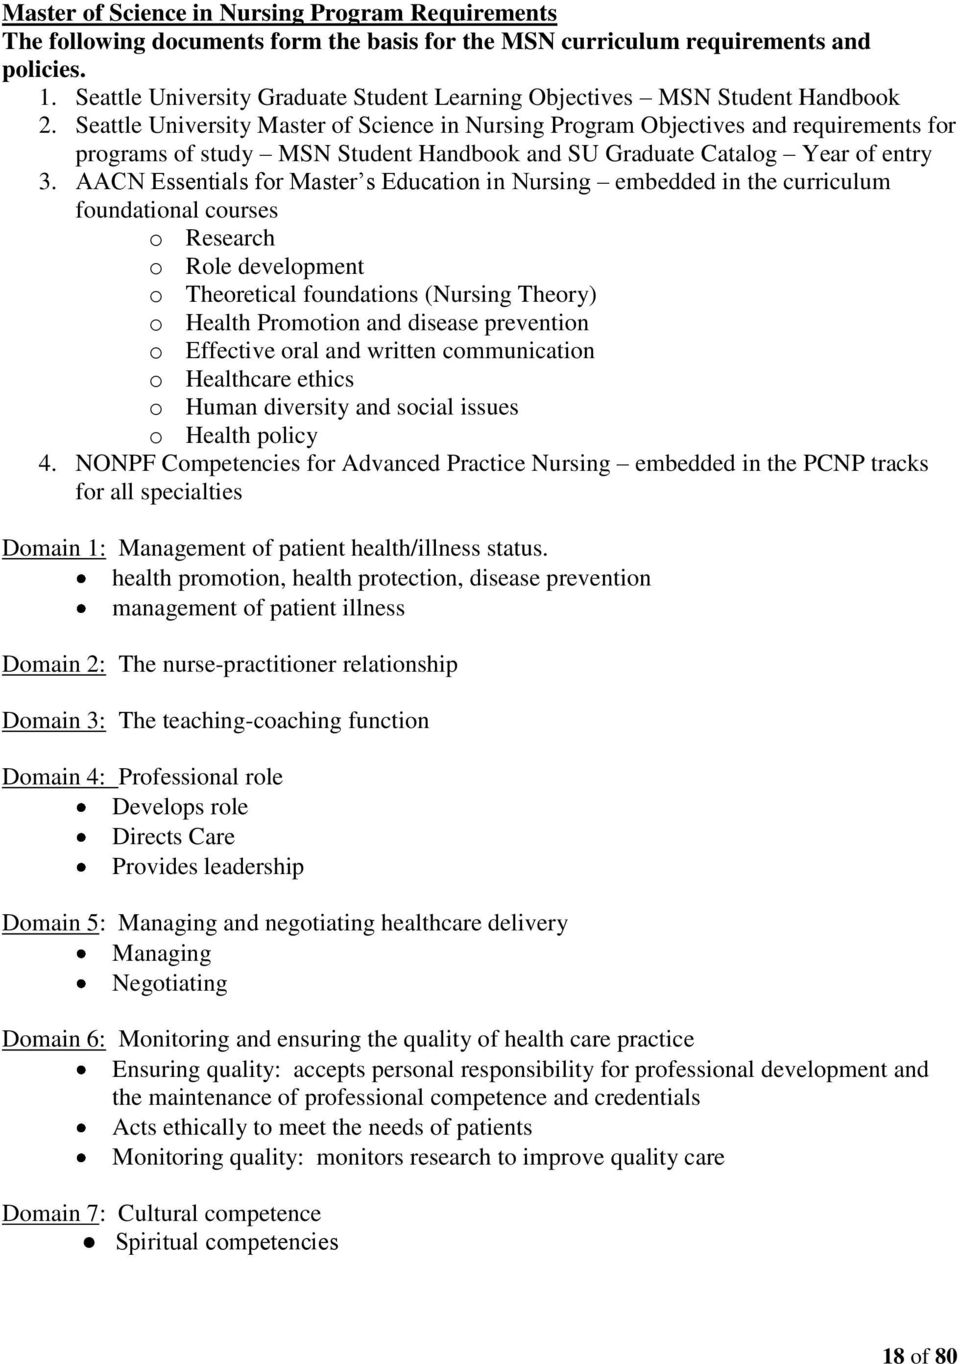 Seattle University Master of Science in Nursing Program Objectives and requirements for programs of study MSN Student Handbook and SU Graduate Catalog Year of entry 3.